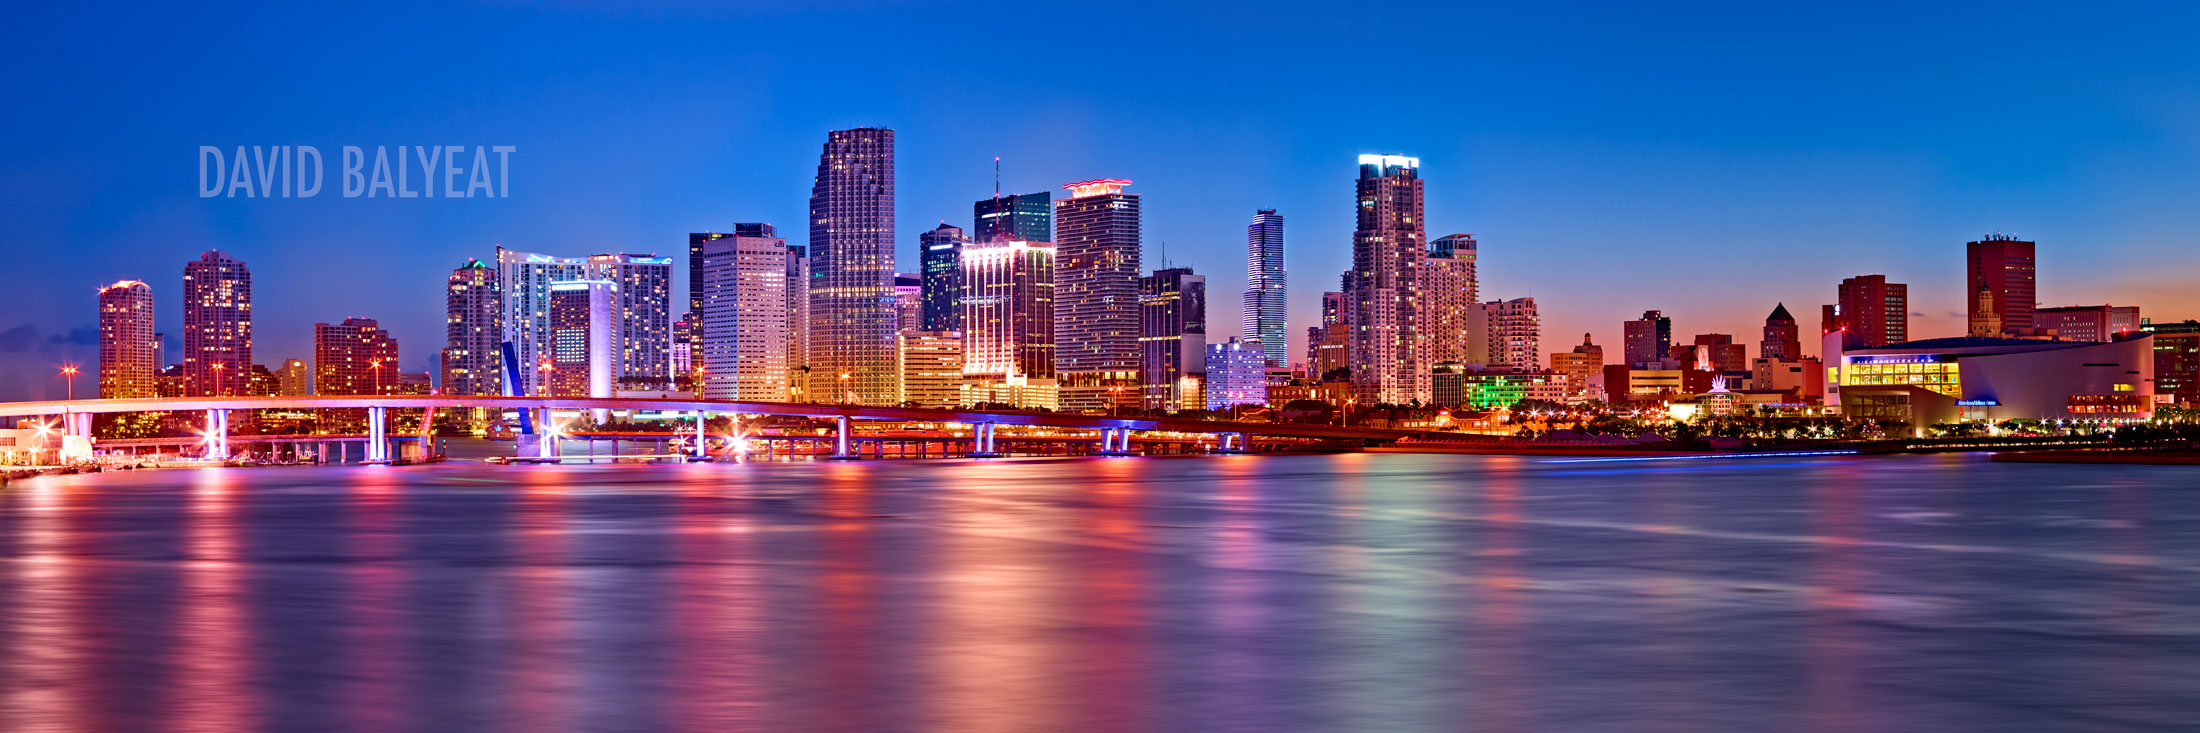 Fall Scenes Desktop Wallpaper Miami Skyline David Balyeat Photography Store